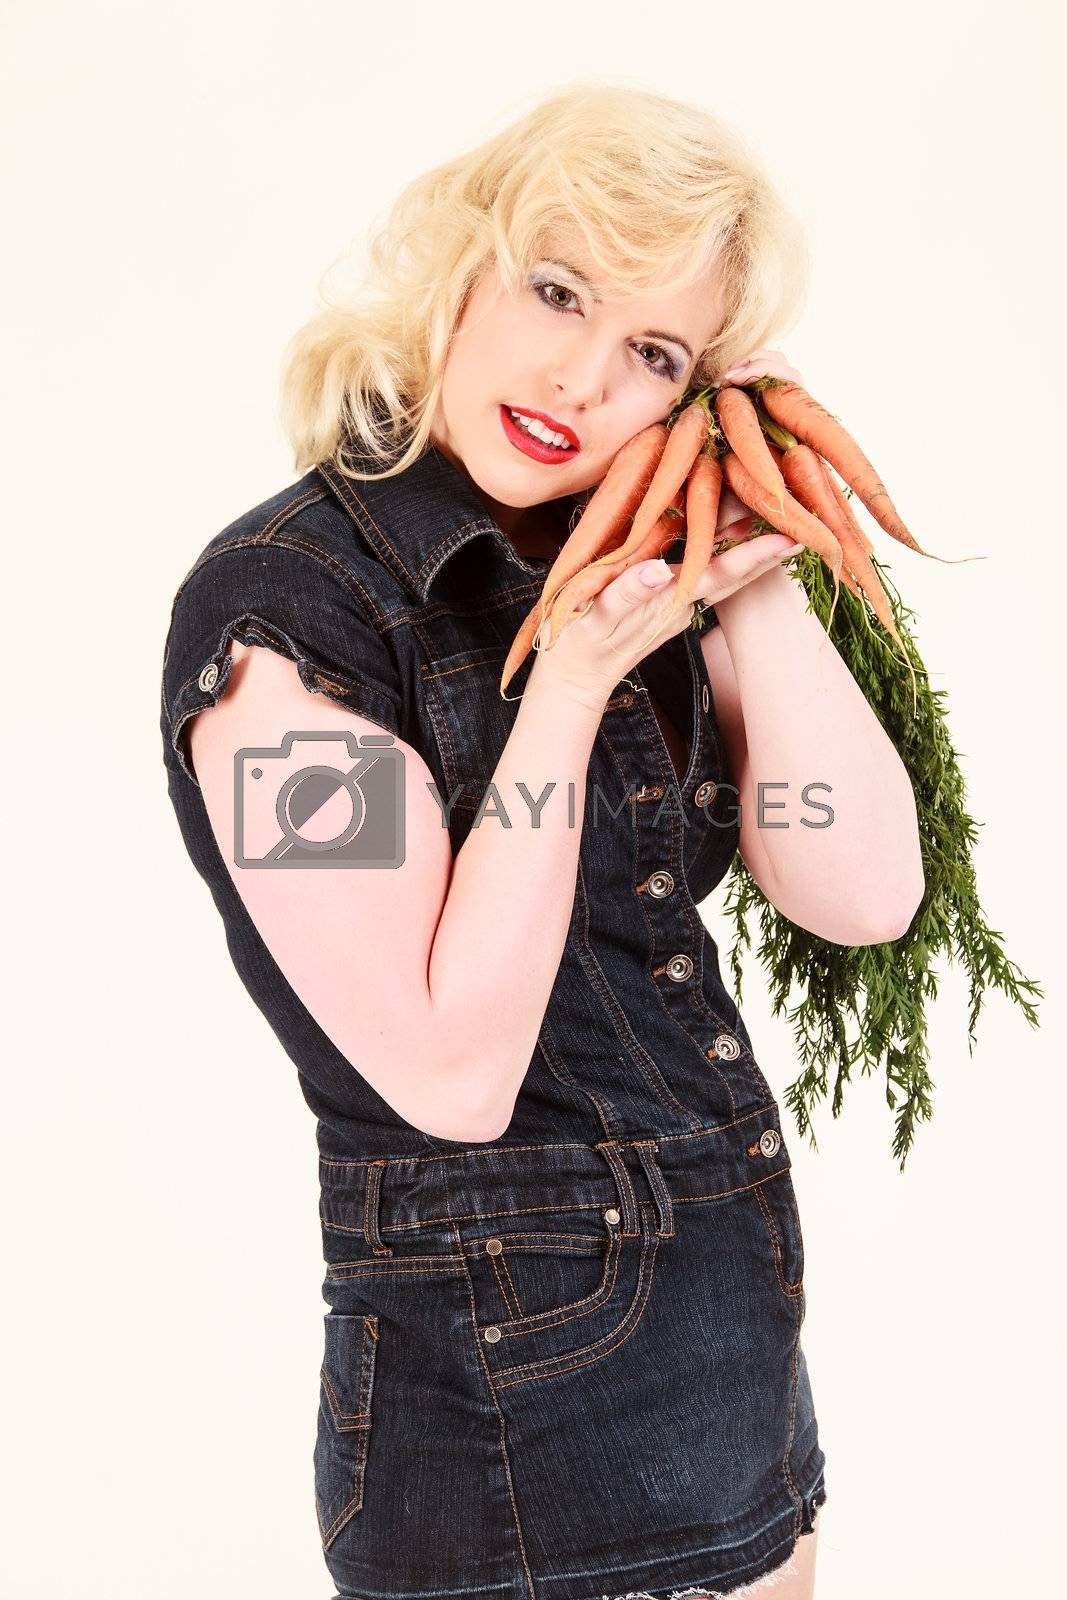 Attractive blond woman holding carrots on the cheek